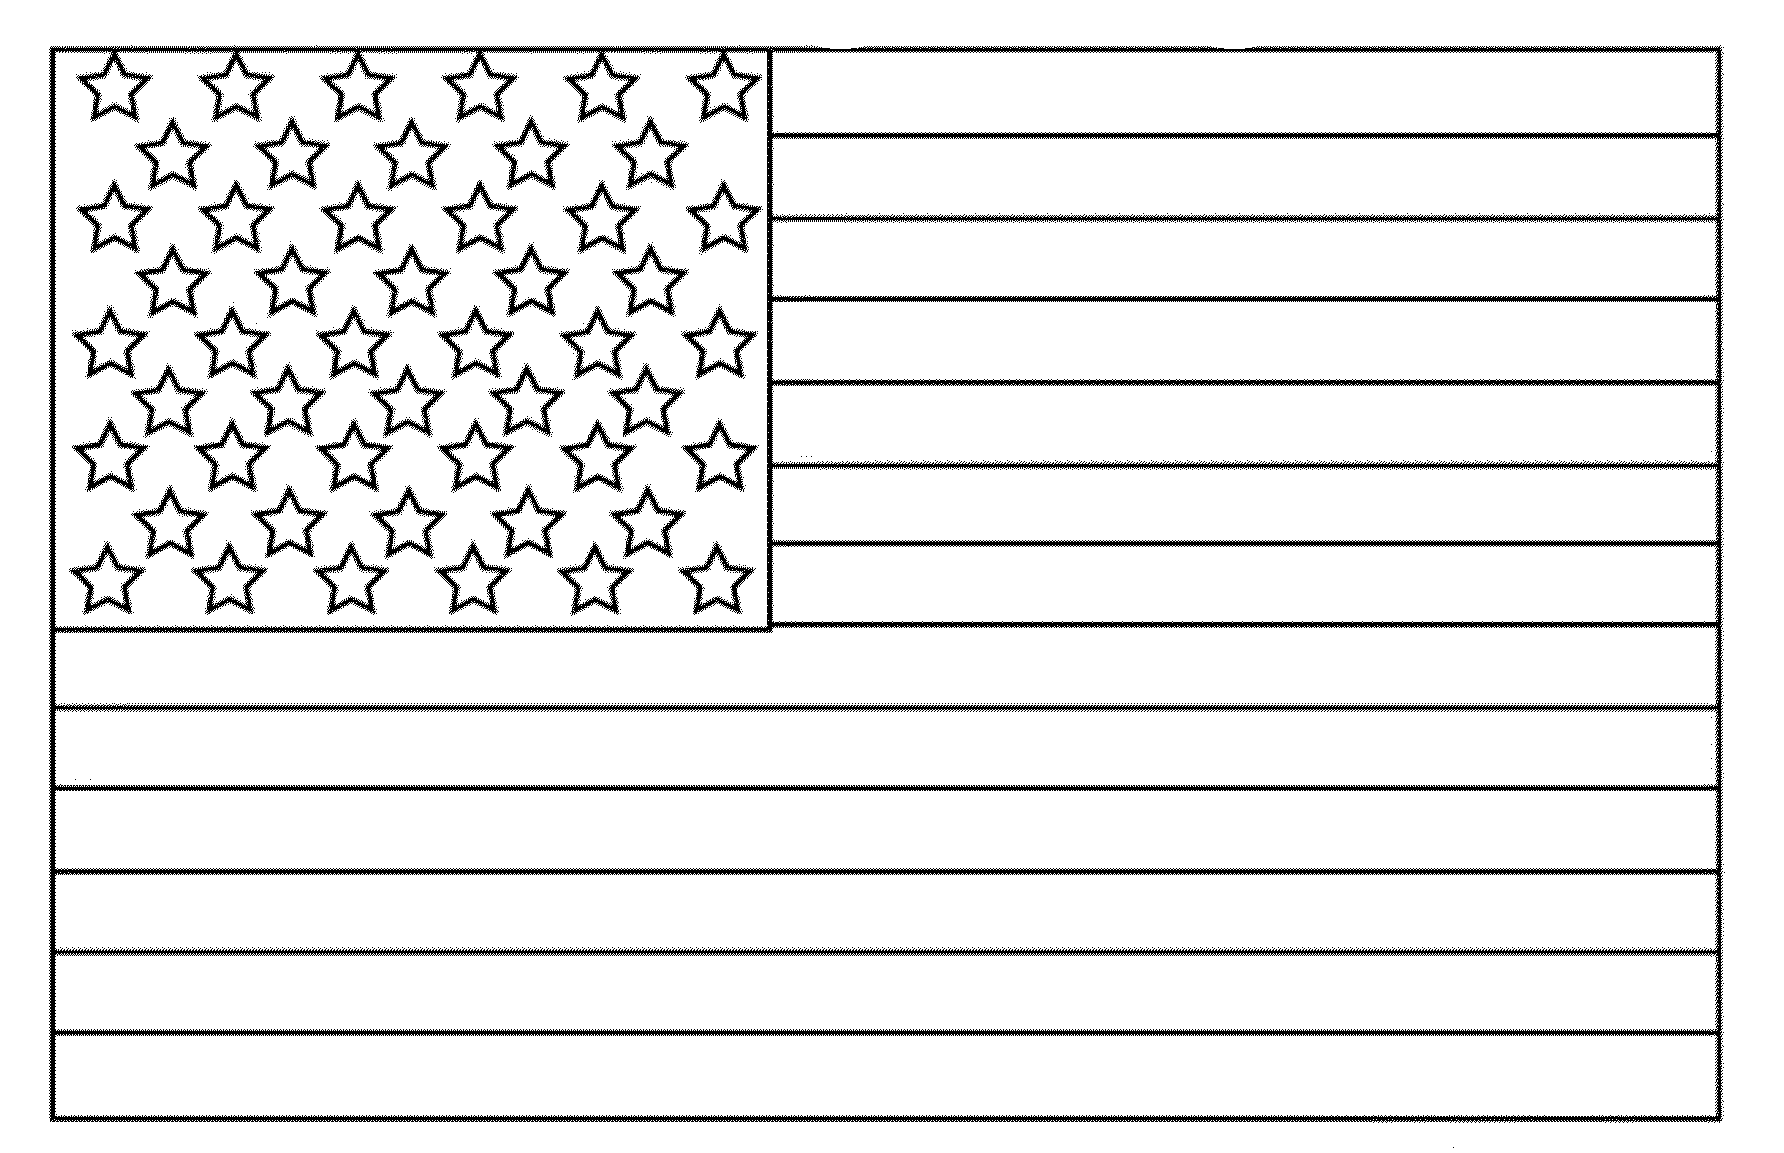 american flag coloring pages american flag coloring pages 2021 z31 coloring page coloring american pages flag